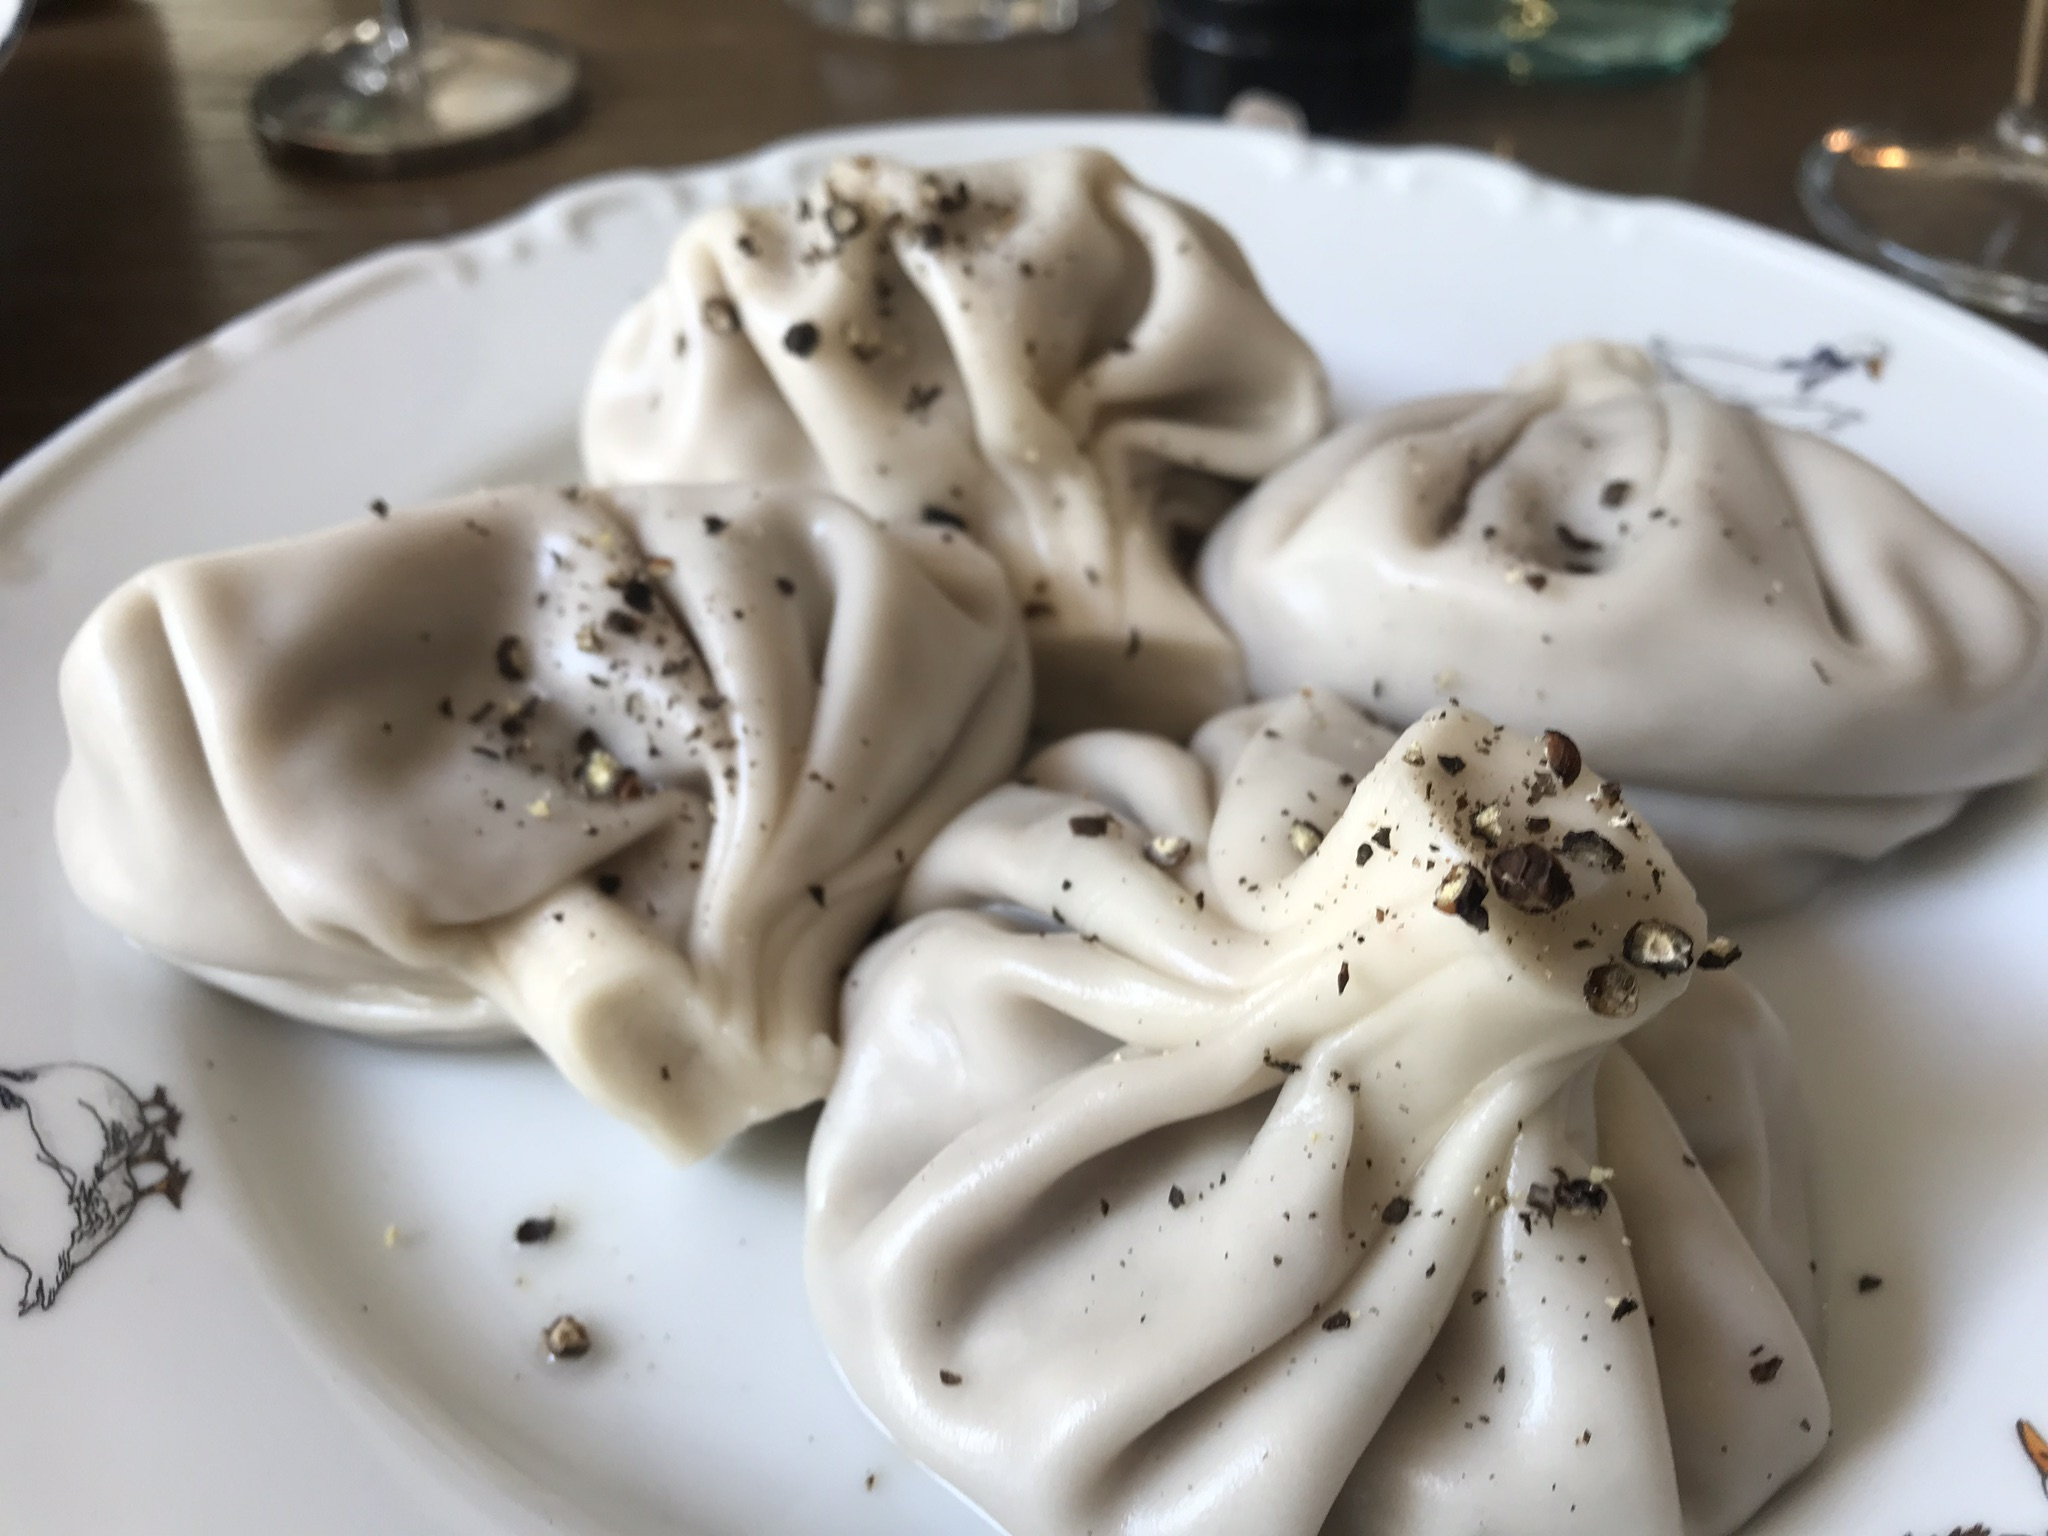 Khinkali (soup dumplings). Photo by Alexa van Sickle.